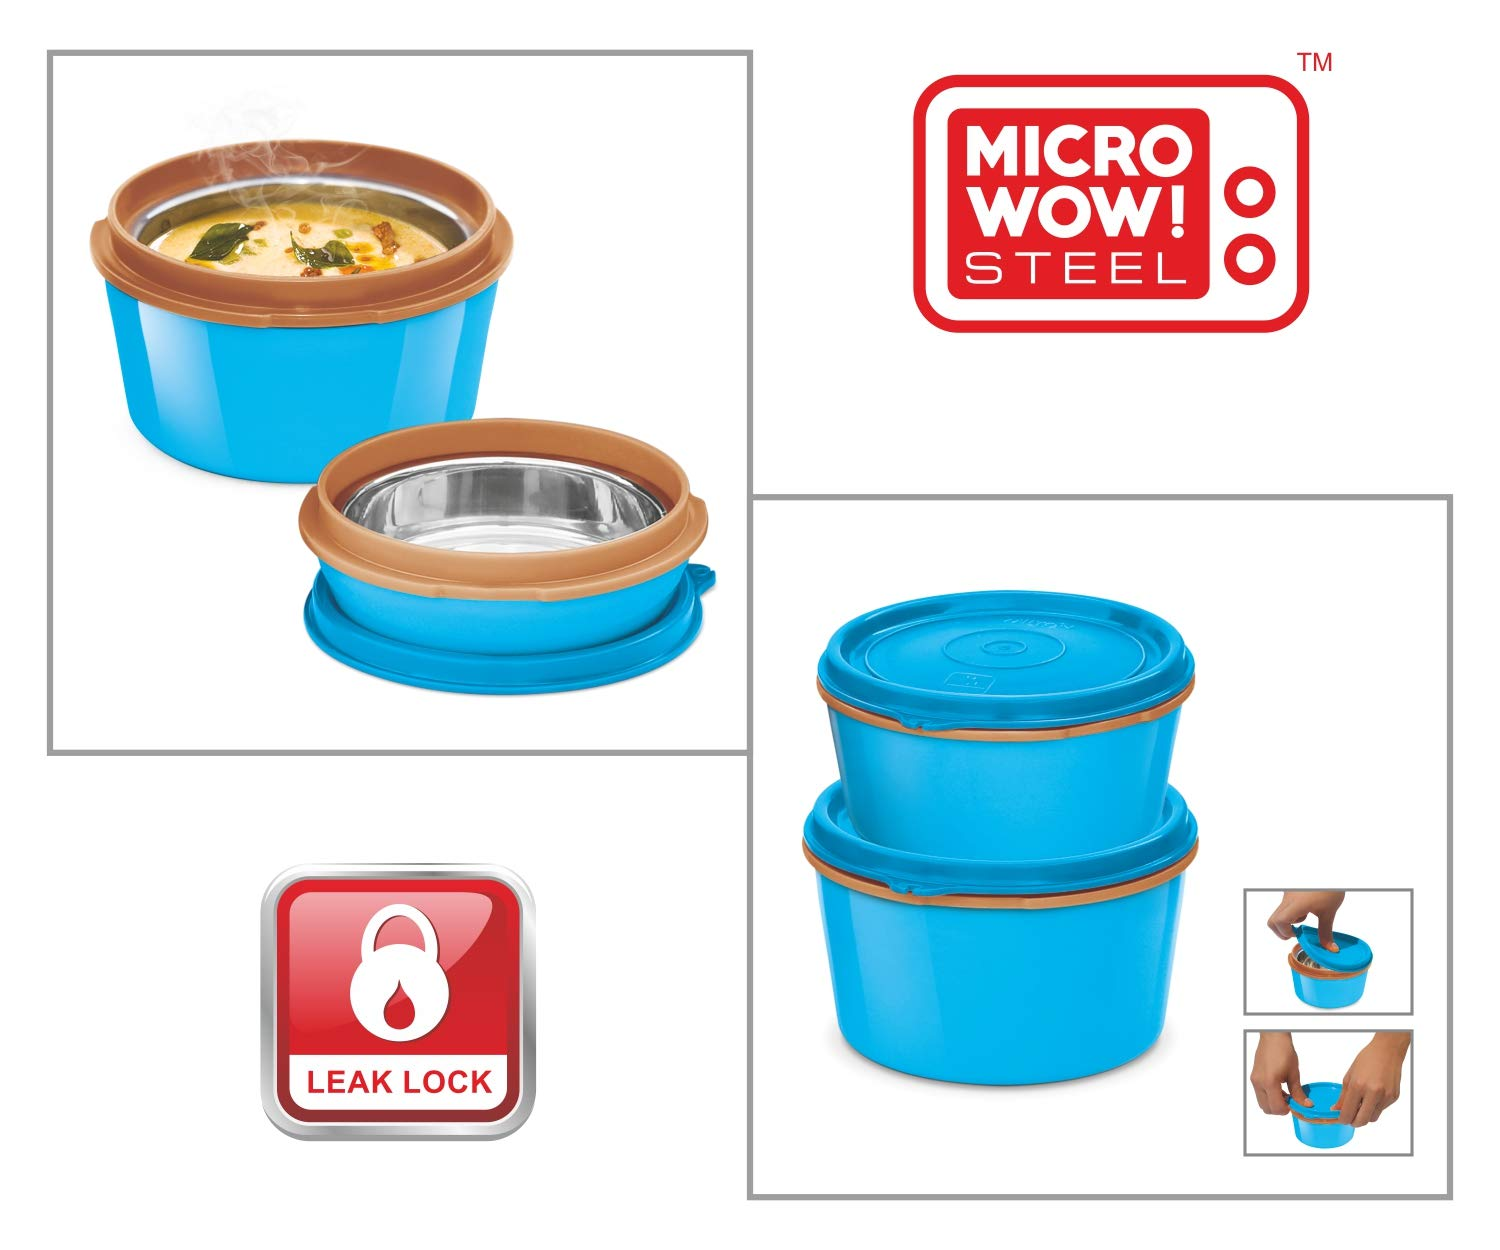 MILTON Bento Lunch Box Set -4 MICROWAVEABLE Stainless Steel Meal Prep Containers, Expandable Thermal Insulated Lunch Bag, SS Spoon Double Wall Food Storage Boxes w/Leak Proof Lids For Men,Women,Kids by Milton (Image #6)